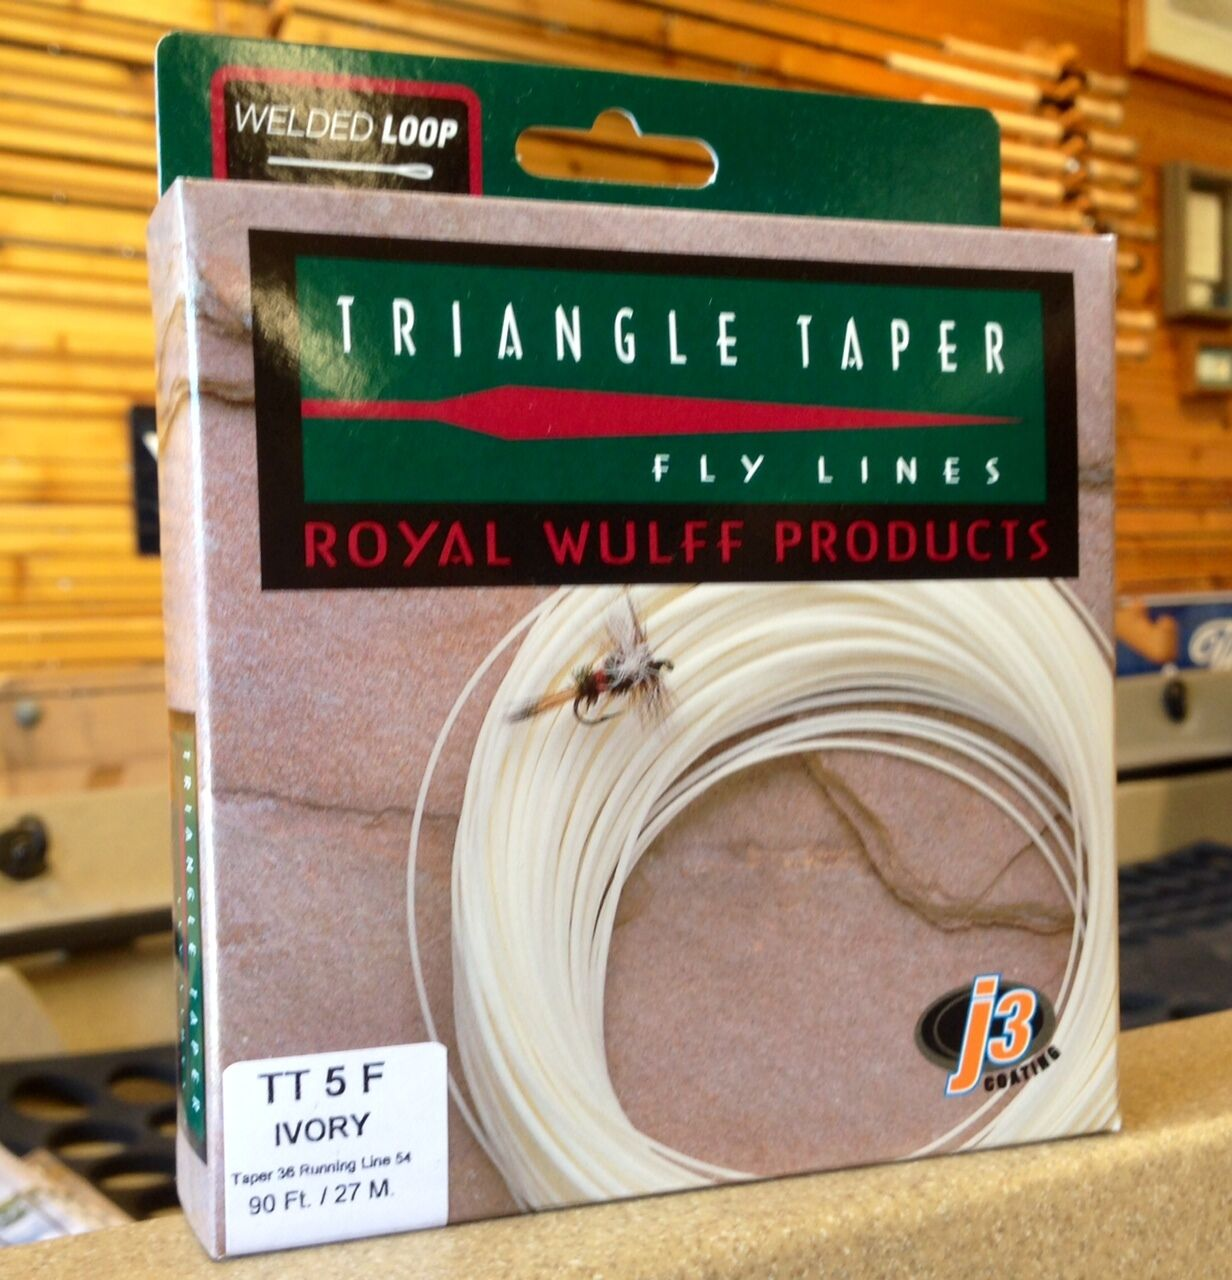 Royal Wulff Triangle Taper Fly Line  Streams of Dreams Fly Shop